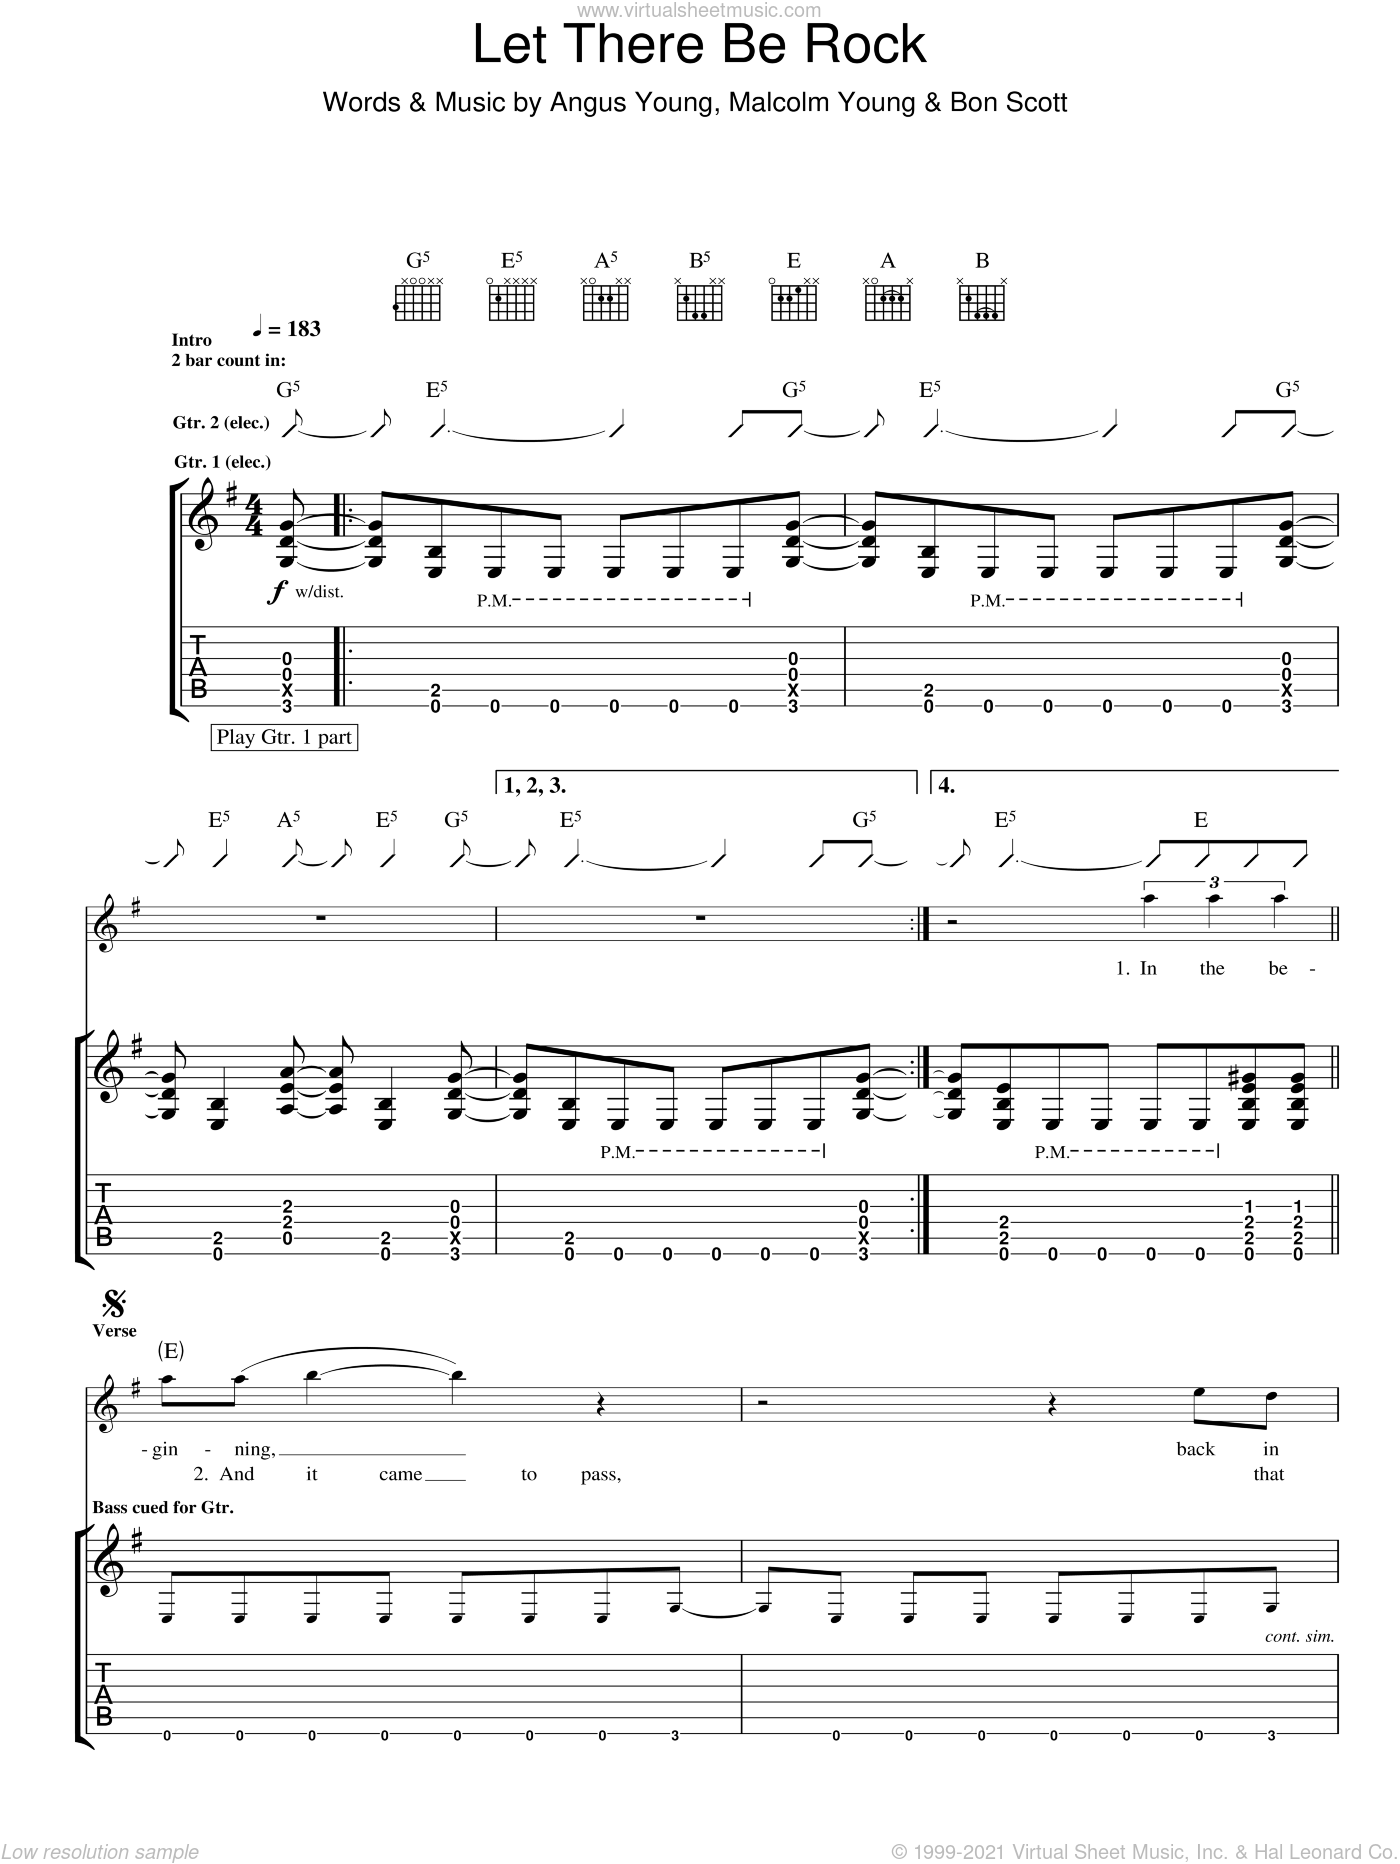 Let There Be Rock sheet music for guitar (tablature) by Malcolm Young